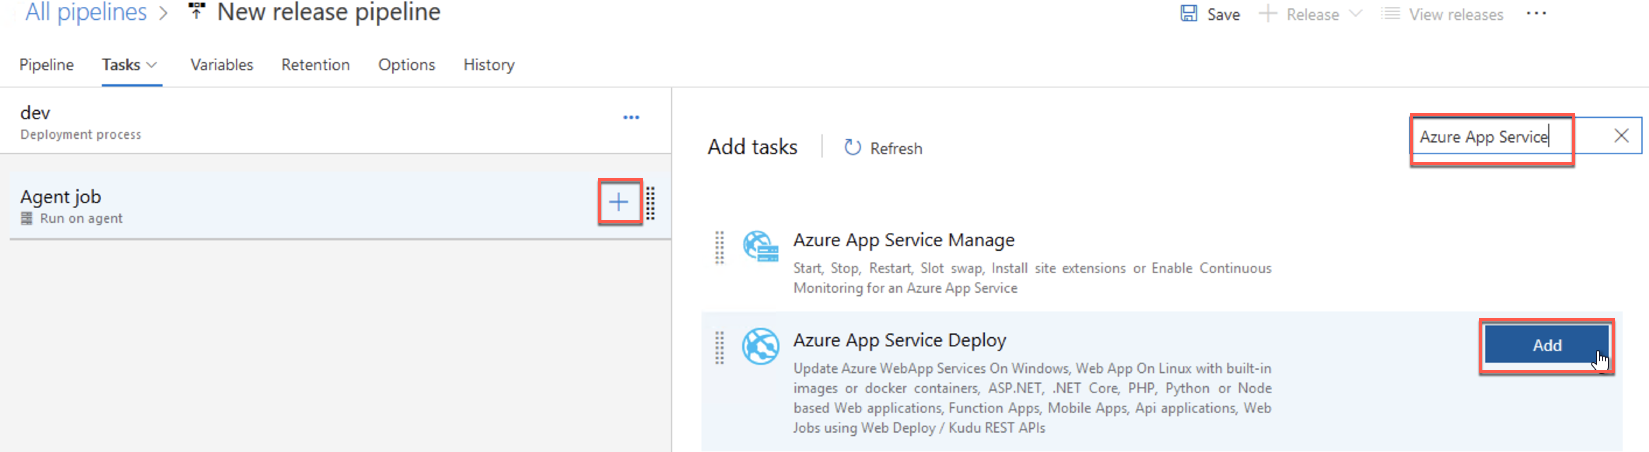 Continous Delivery in VSTS and Azure – includes